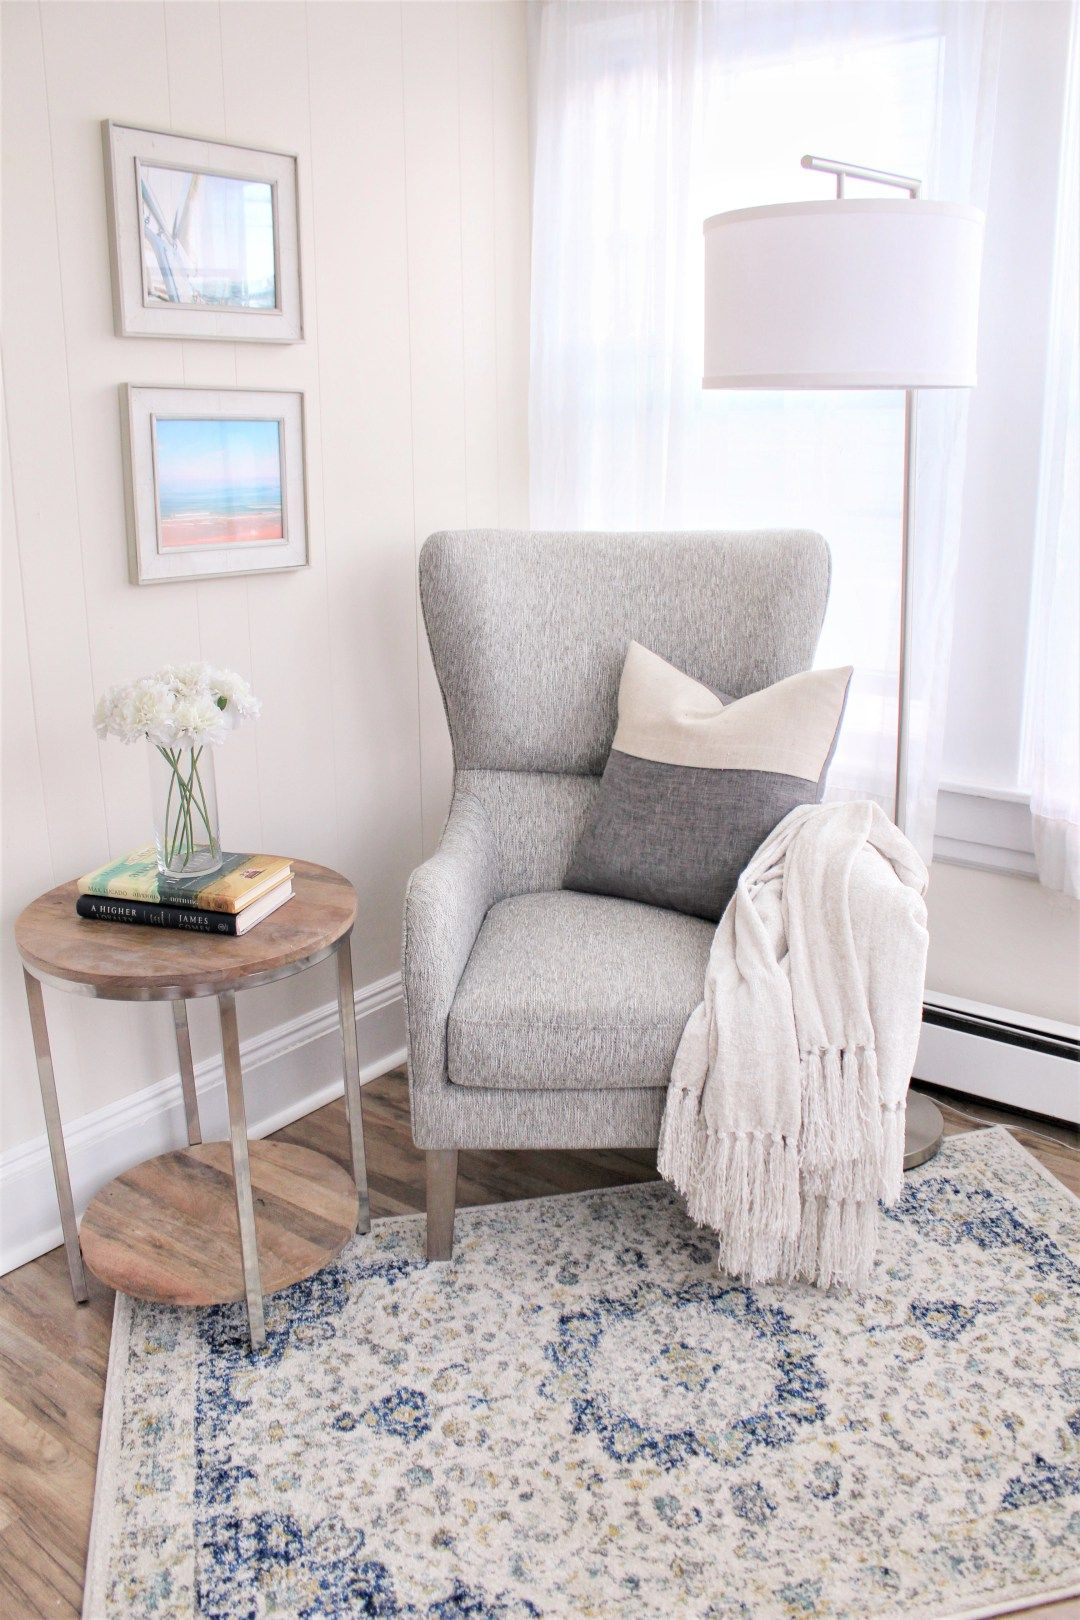 Coastal Cozy Reading Nook   Cabana State Of Mind is part of Bedroom reading nooks - I turned this corner of our house into a cozy reading nook perfect for curling up with a book or enjoying a cup of coffee with the windows open